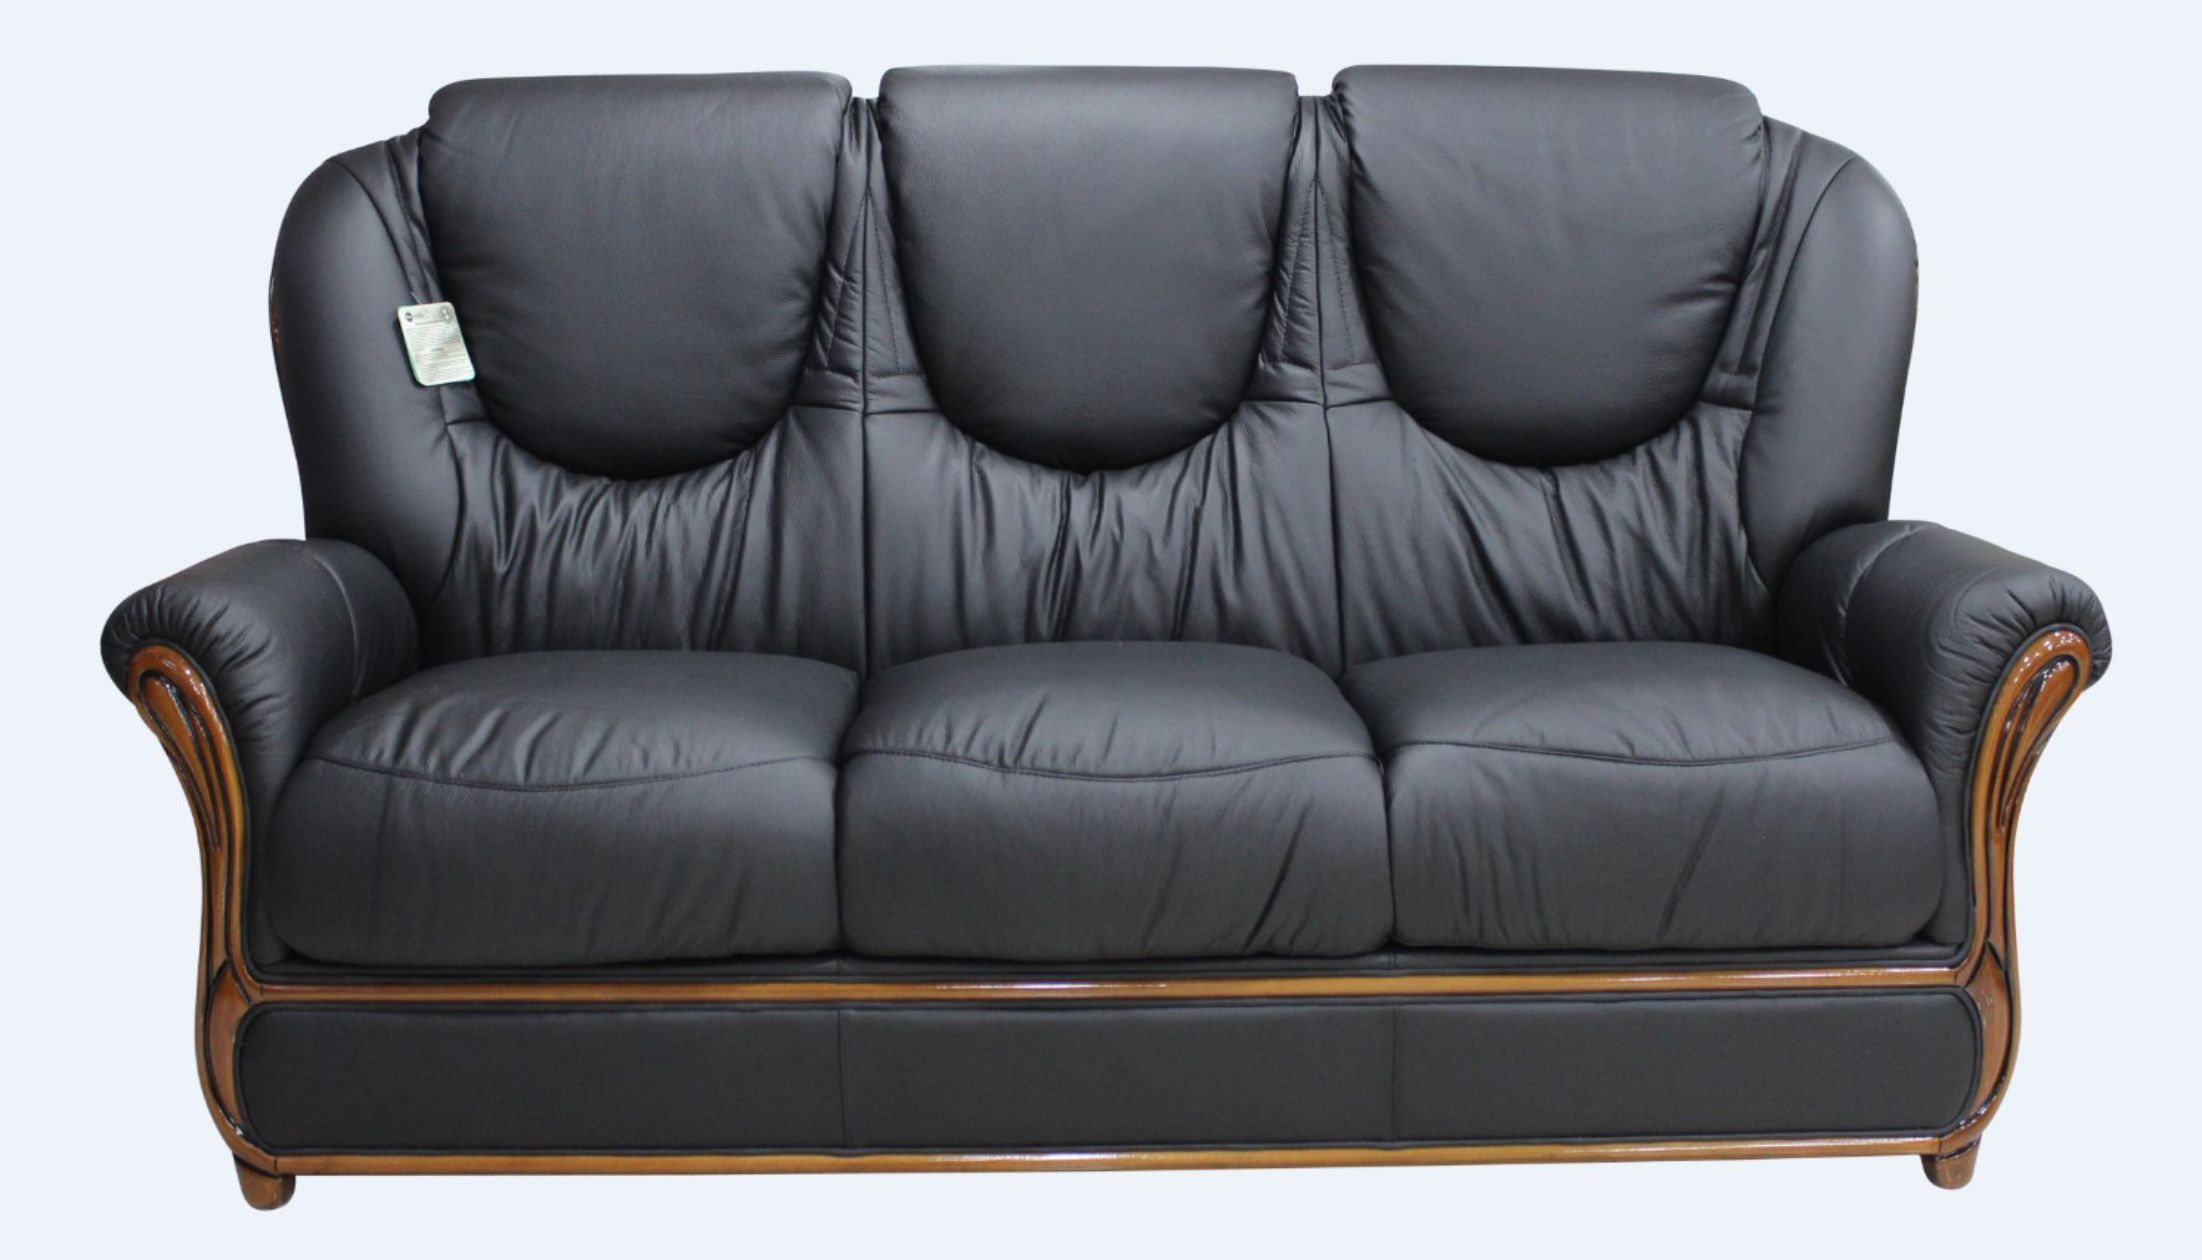 Often, owners of antiques are unsure how they can turn antique pieces into profit. Juliet Genuine Italian Leather 3 Seater Sofa Settee Black